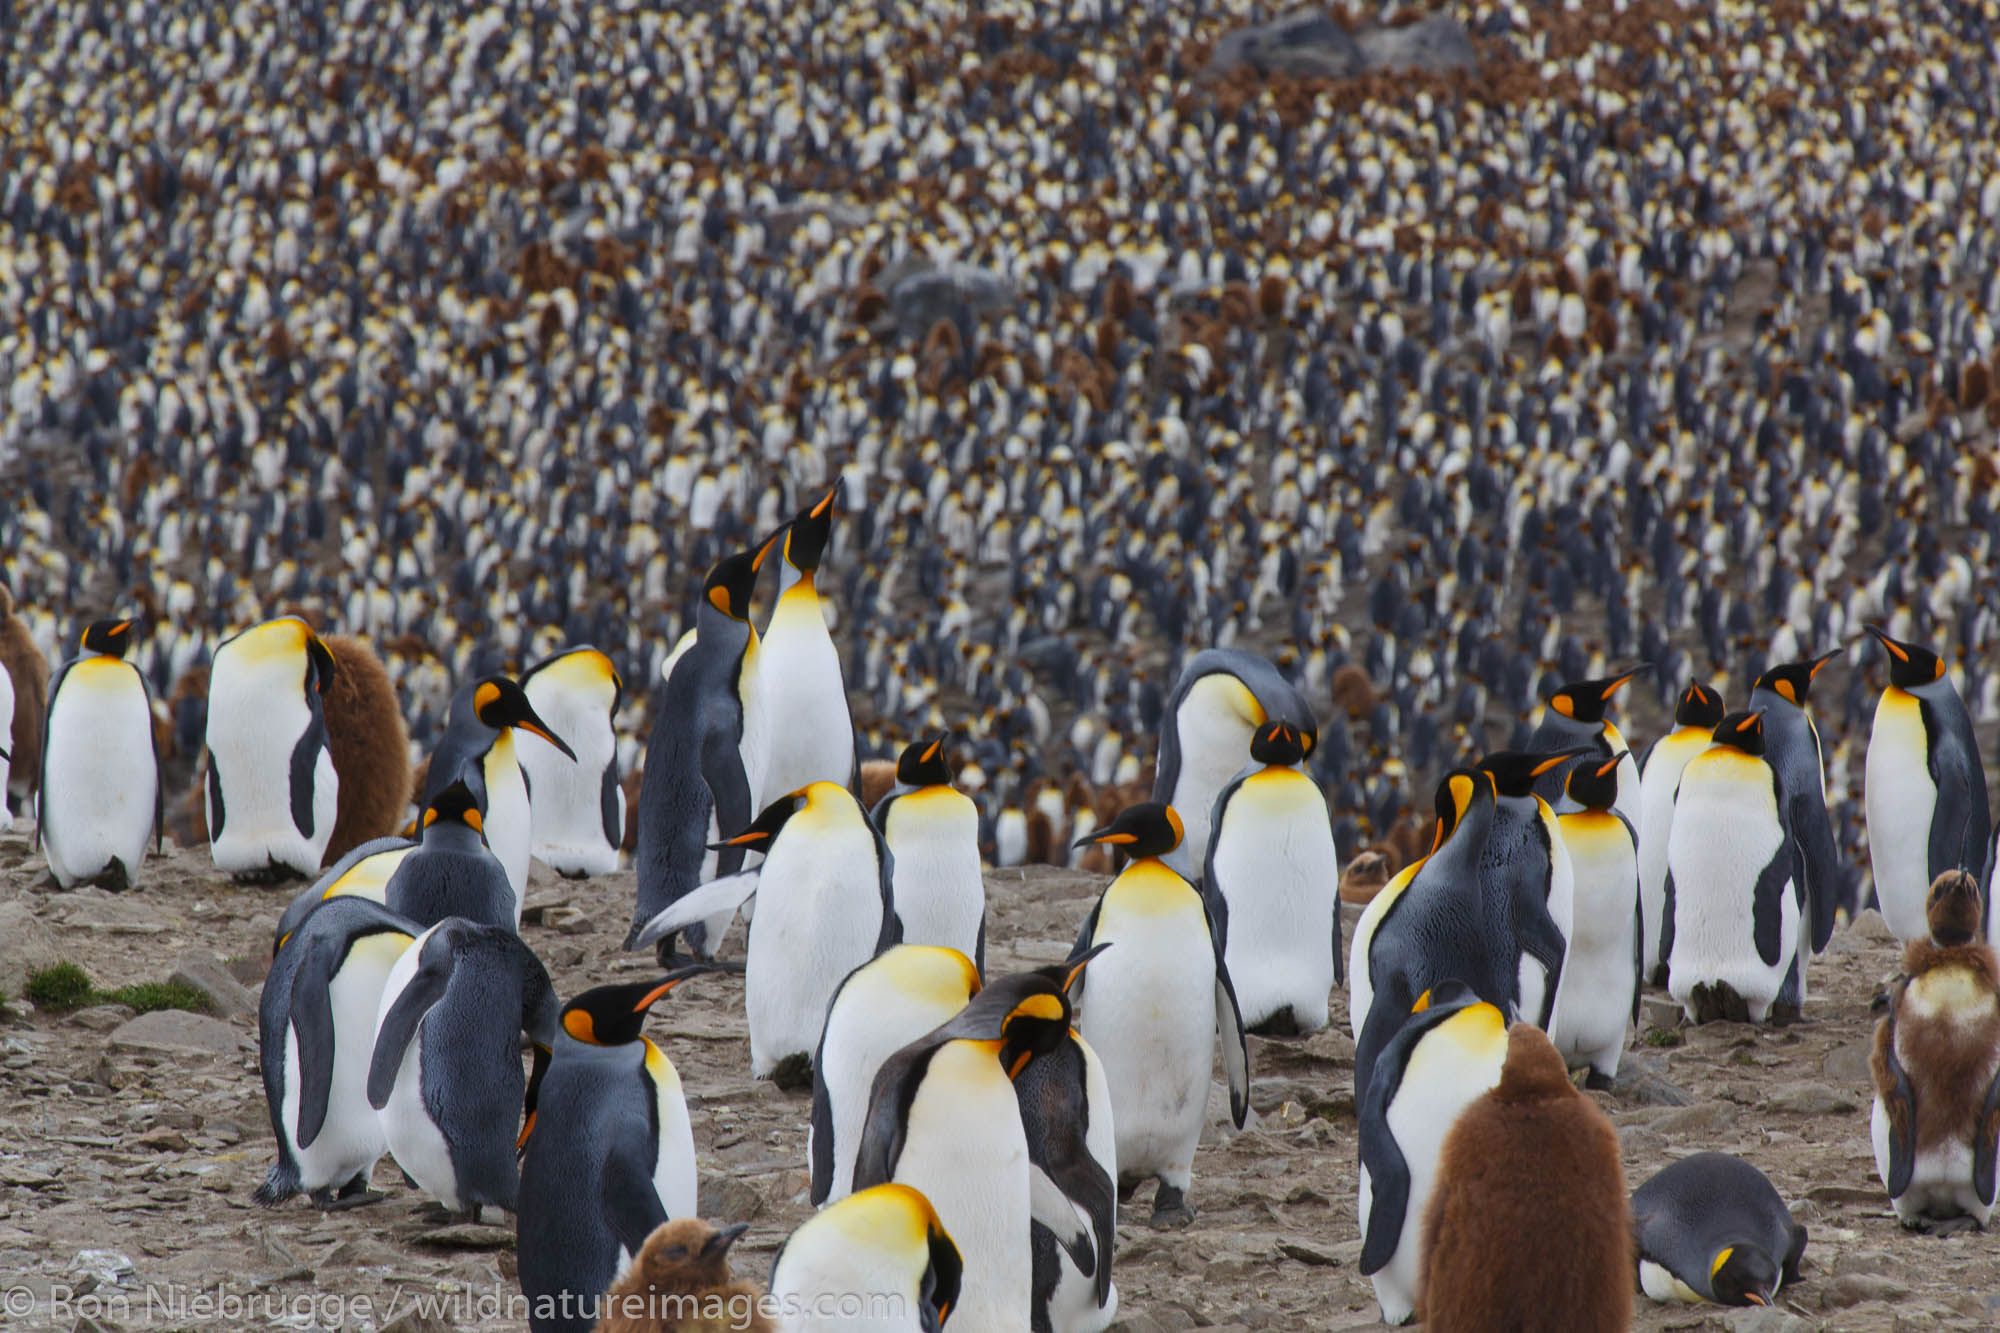 King penguins (Aptenodytes patagonicus), Saint Andrews Bay, South Georgia, Antarctica.